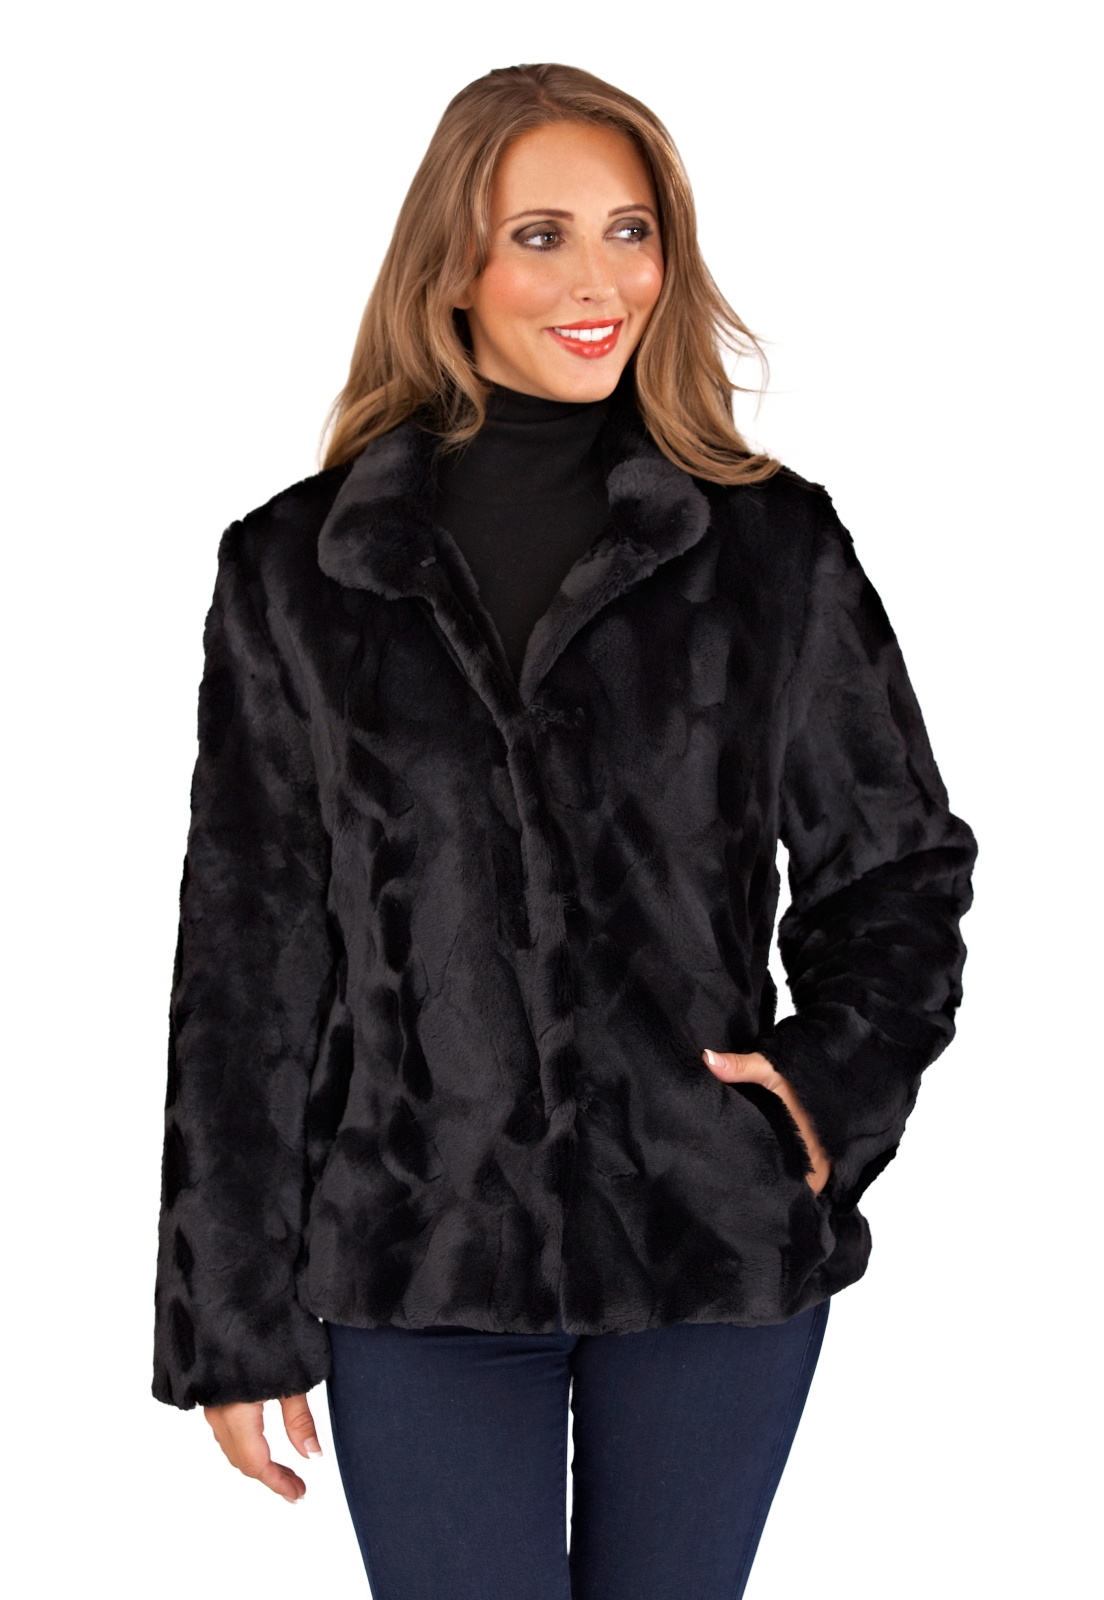 Find Faux fur from the Womens department at Debenhams. Shop a wide range of Coats & jackets products and more at our online shop today. Black swirl faux fur coat Save. Was £ Now £ Dorothy Perkins Berry carved faux fur coat Save. Was £ Now £